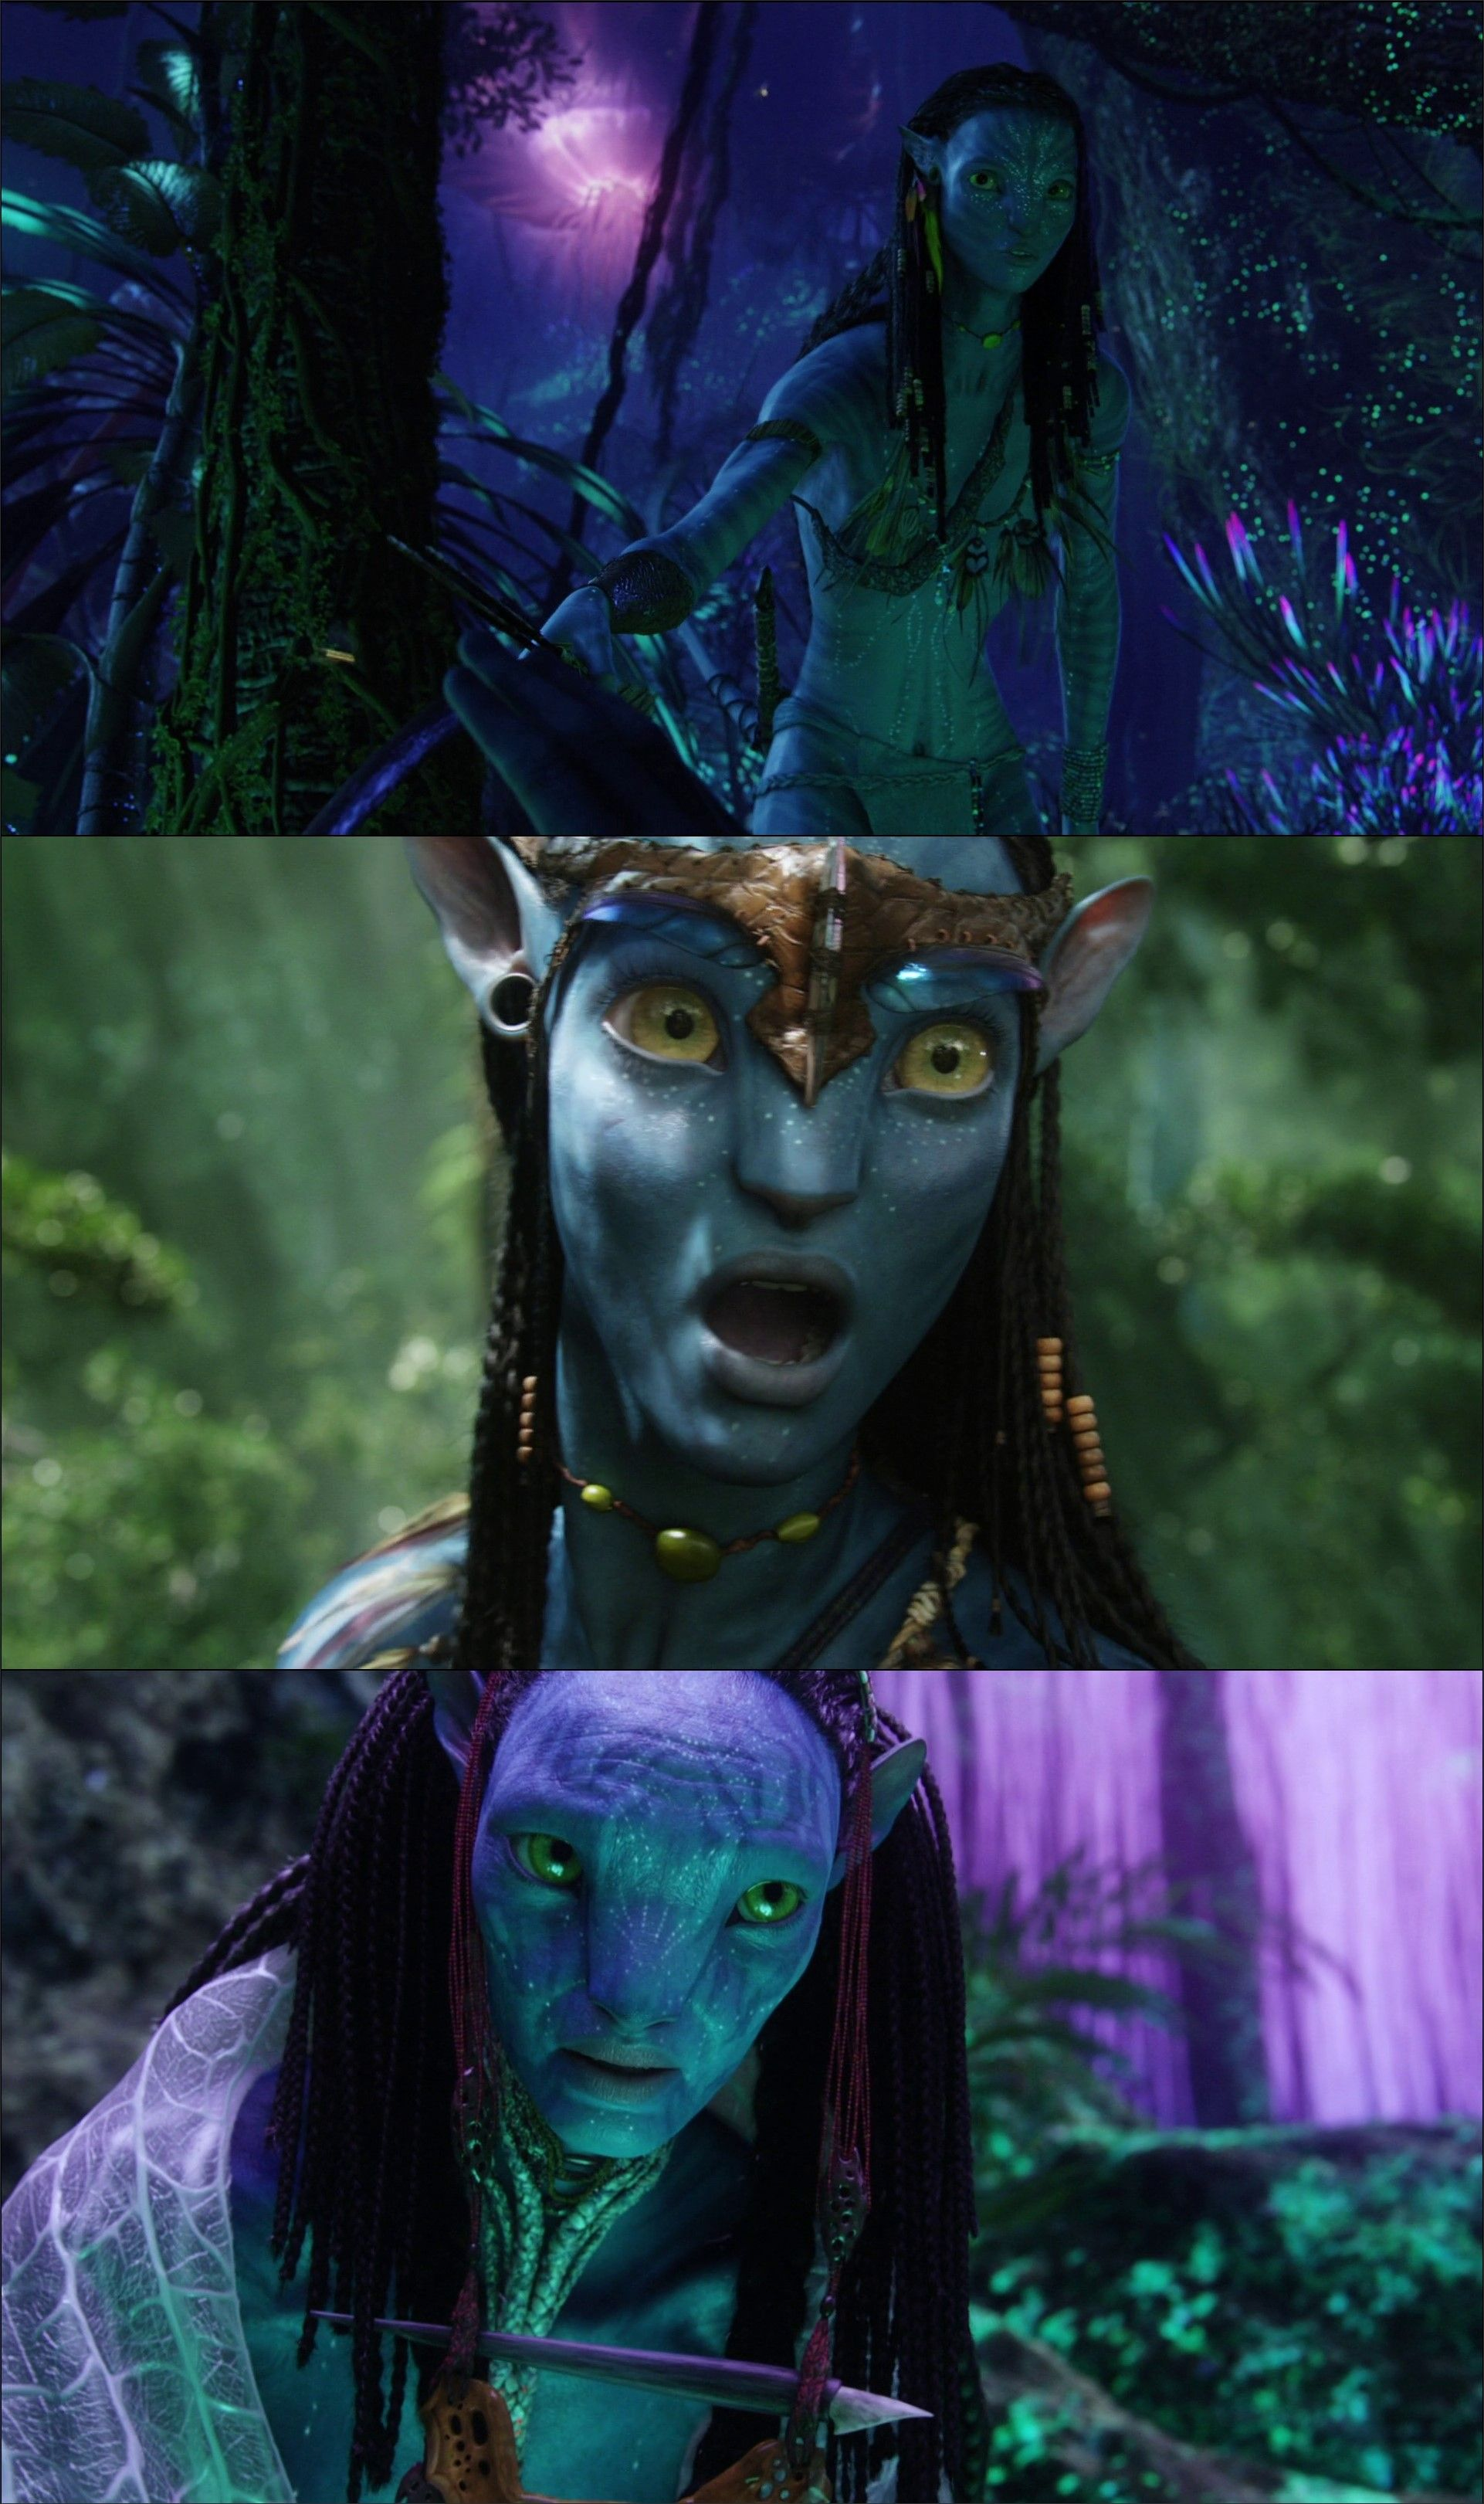 avatar 2009 extended 1080p -- plot a paraplegic marine dispatched to